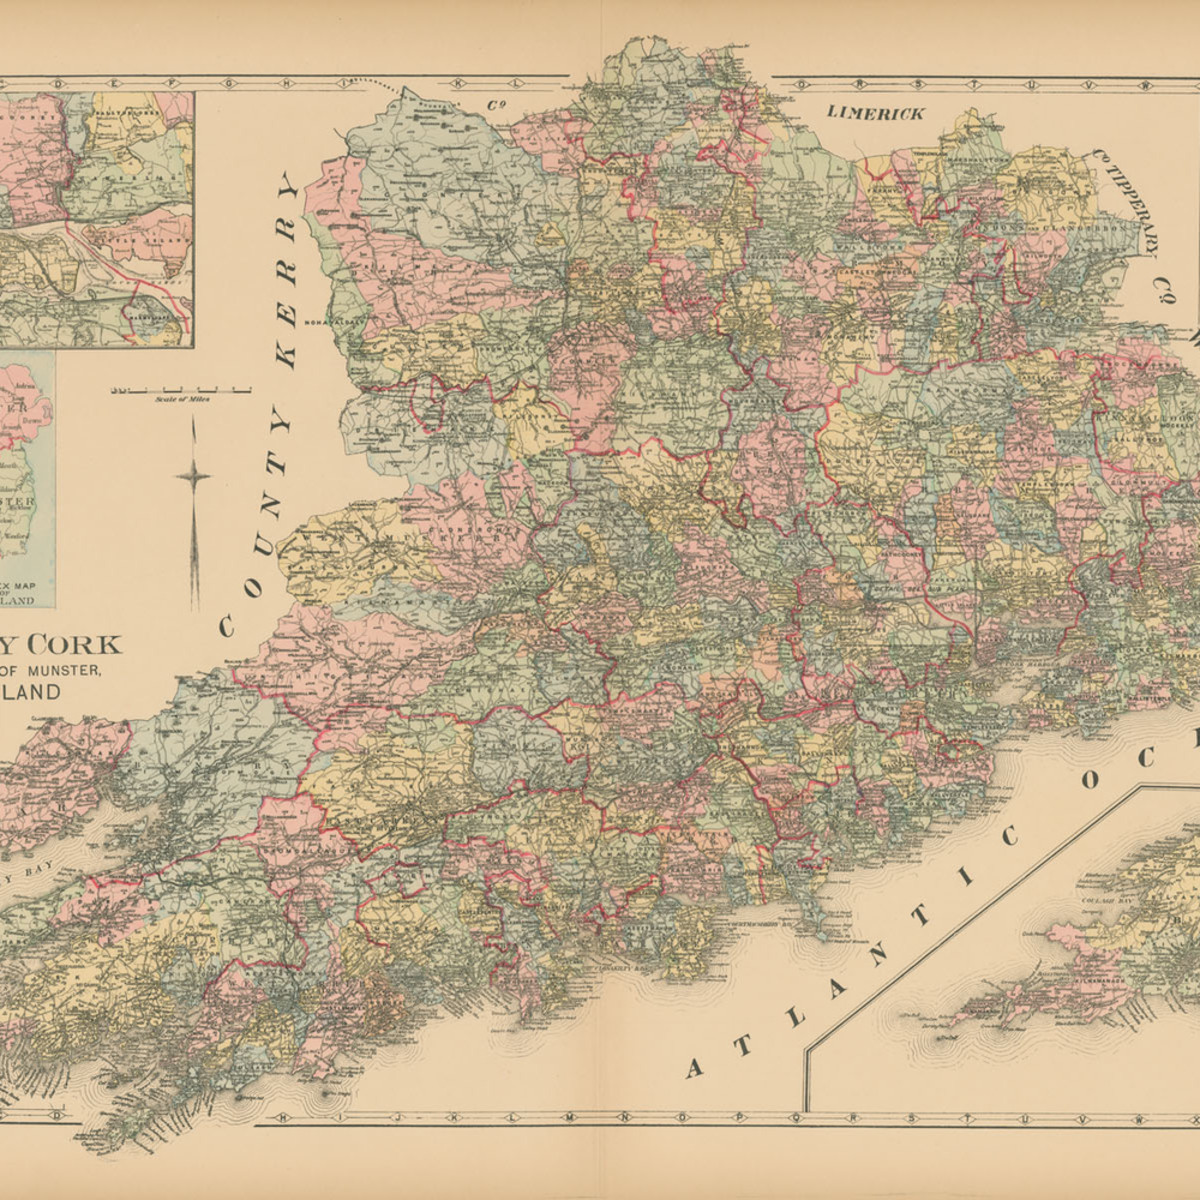 Map of county cork lz1gem